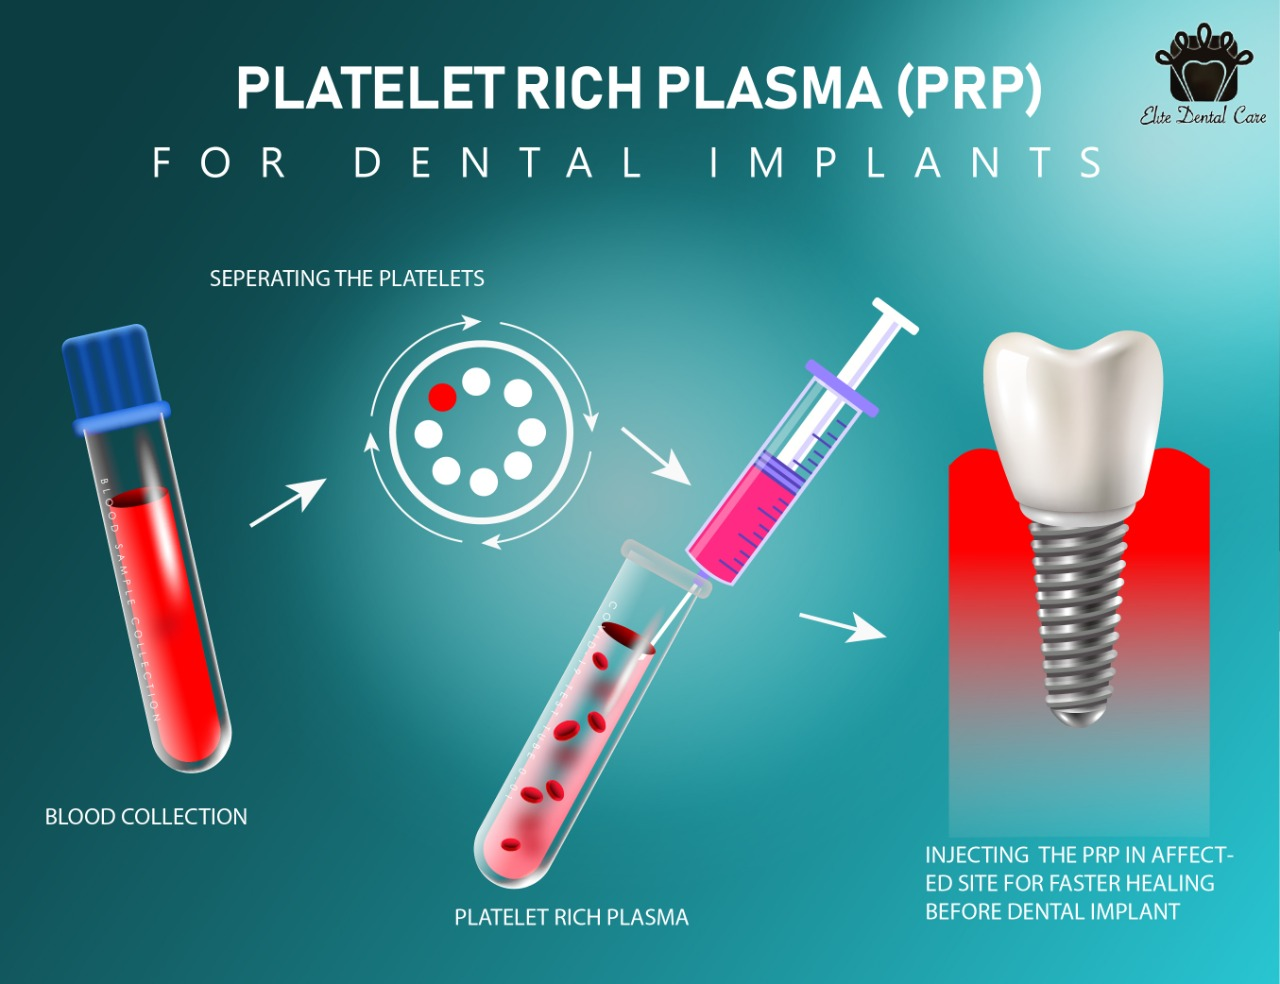 Effect of PRP on Dental Implants